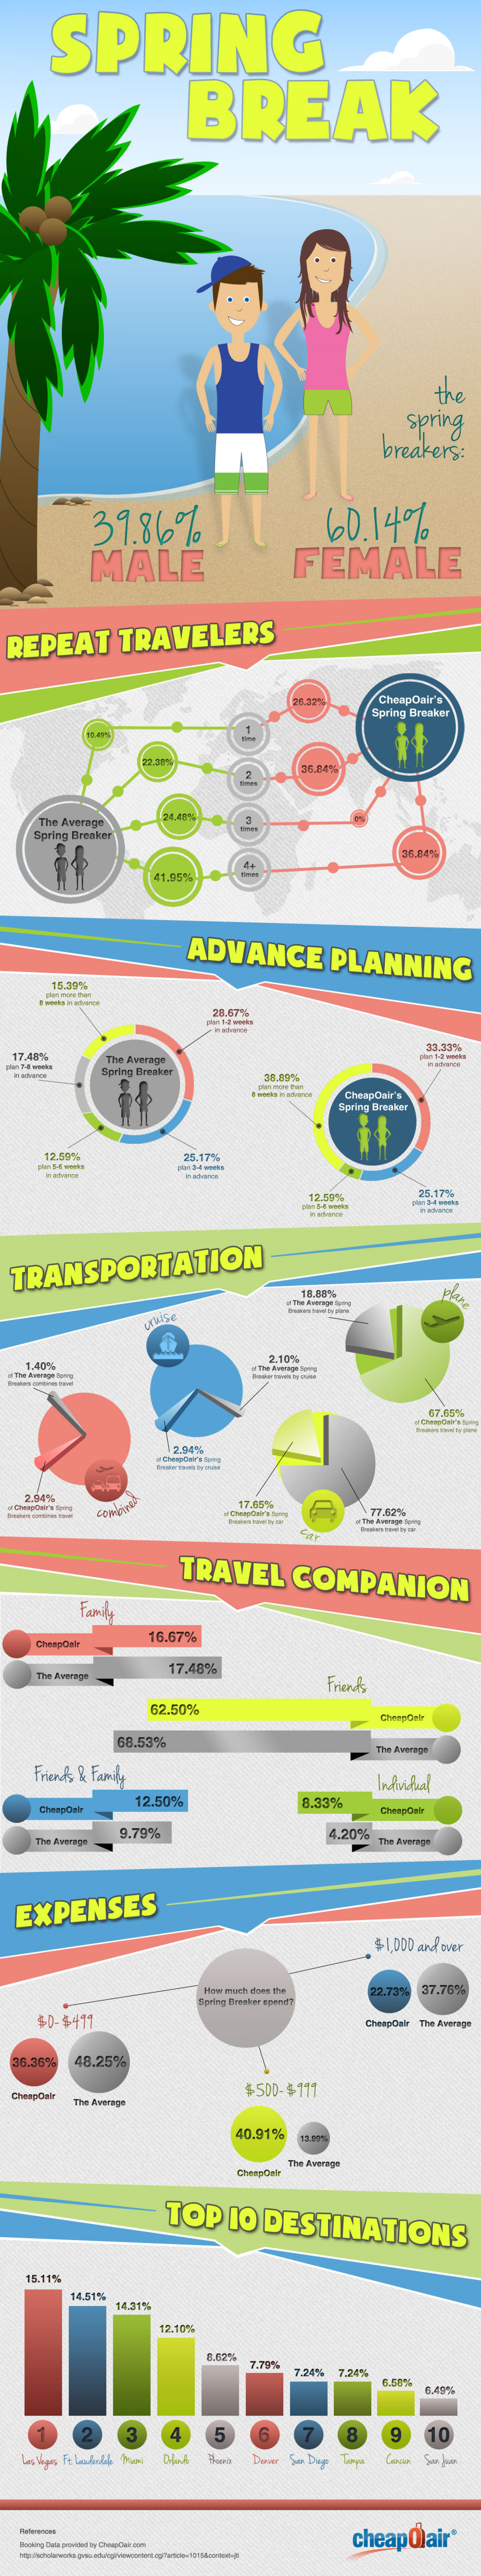 Top Spring Break Destinations Infographic